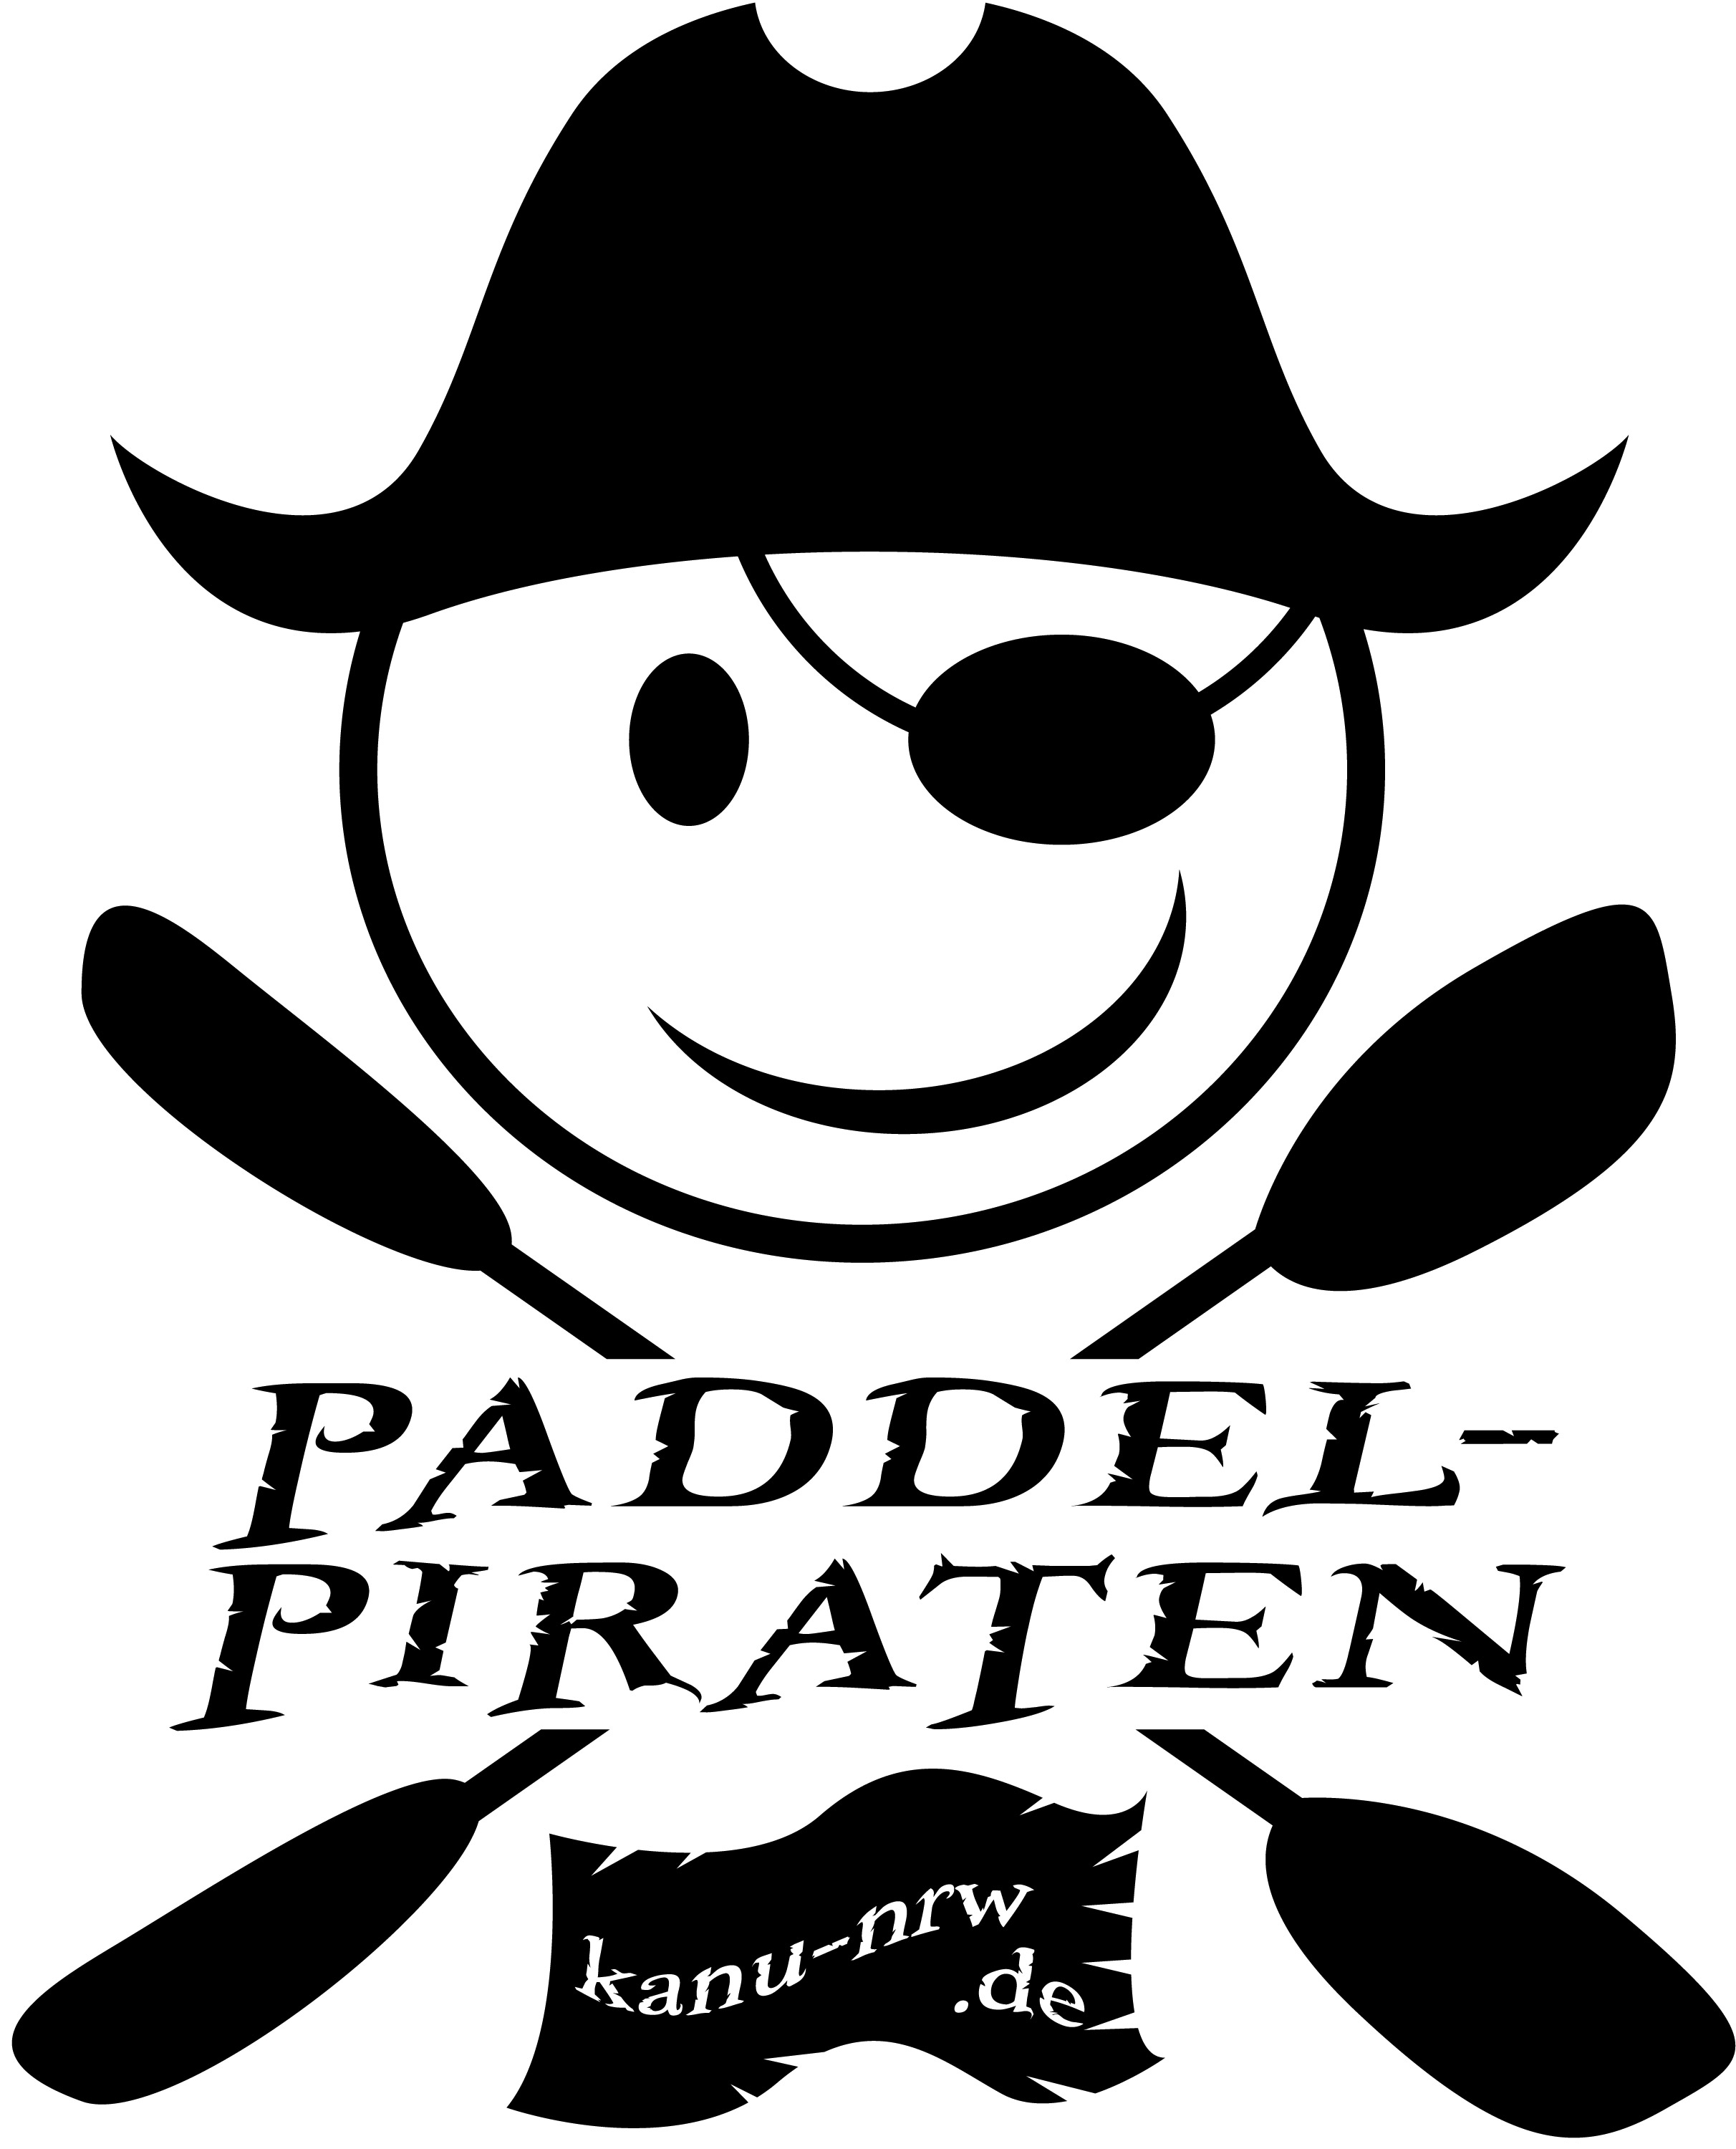 paddel piraten logo final 01